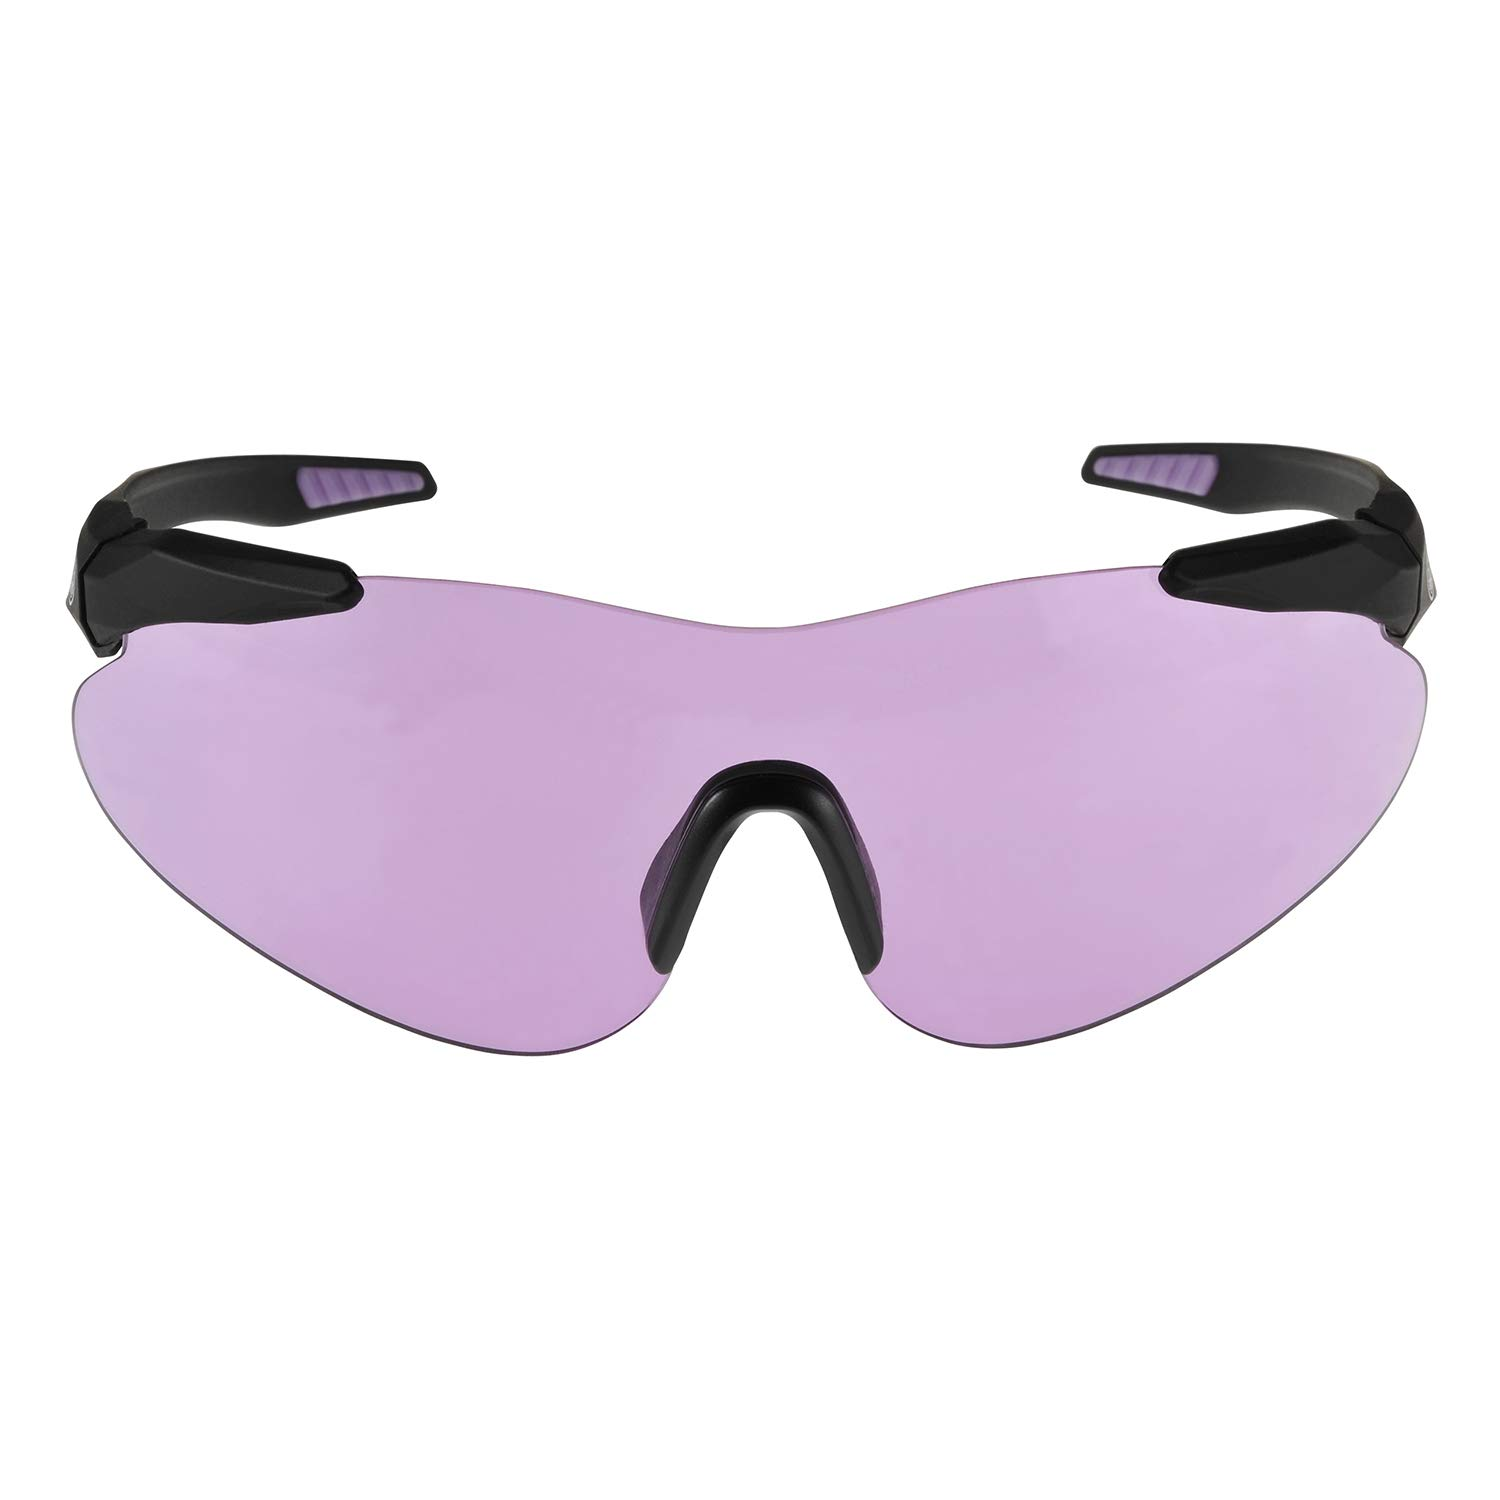 Beretta Shooting Glasses with Policarbonate Injected Lens, Purple by Beretta